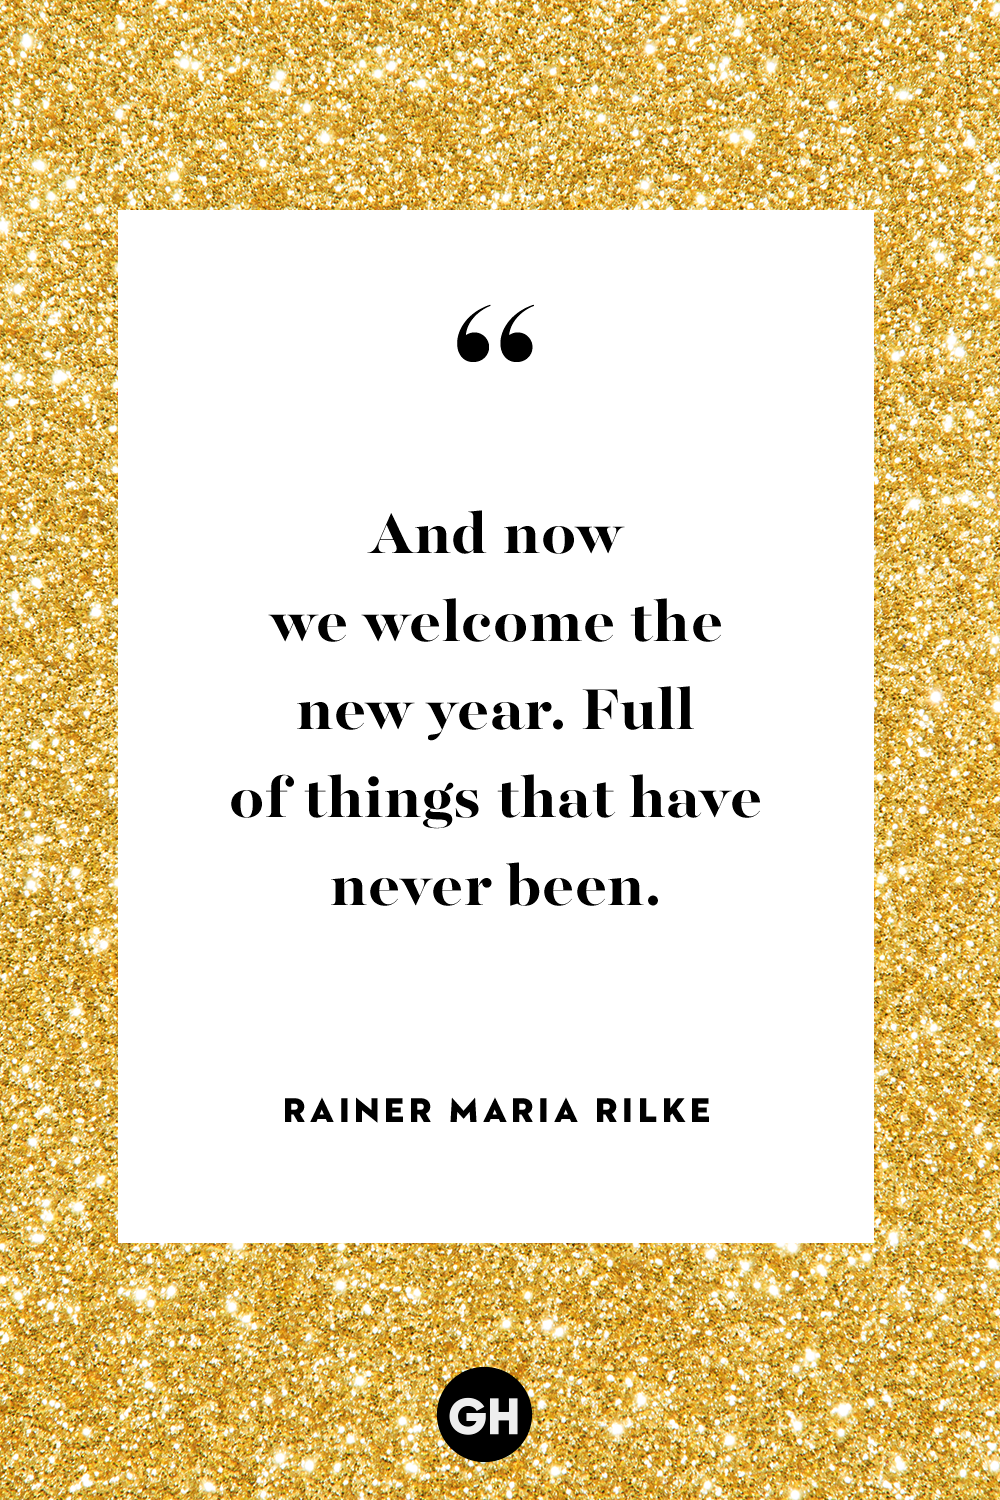 50 Best New Year Quotes 2020 - Inspiring NYE End of Year Sayings